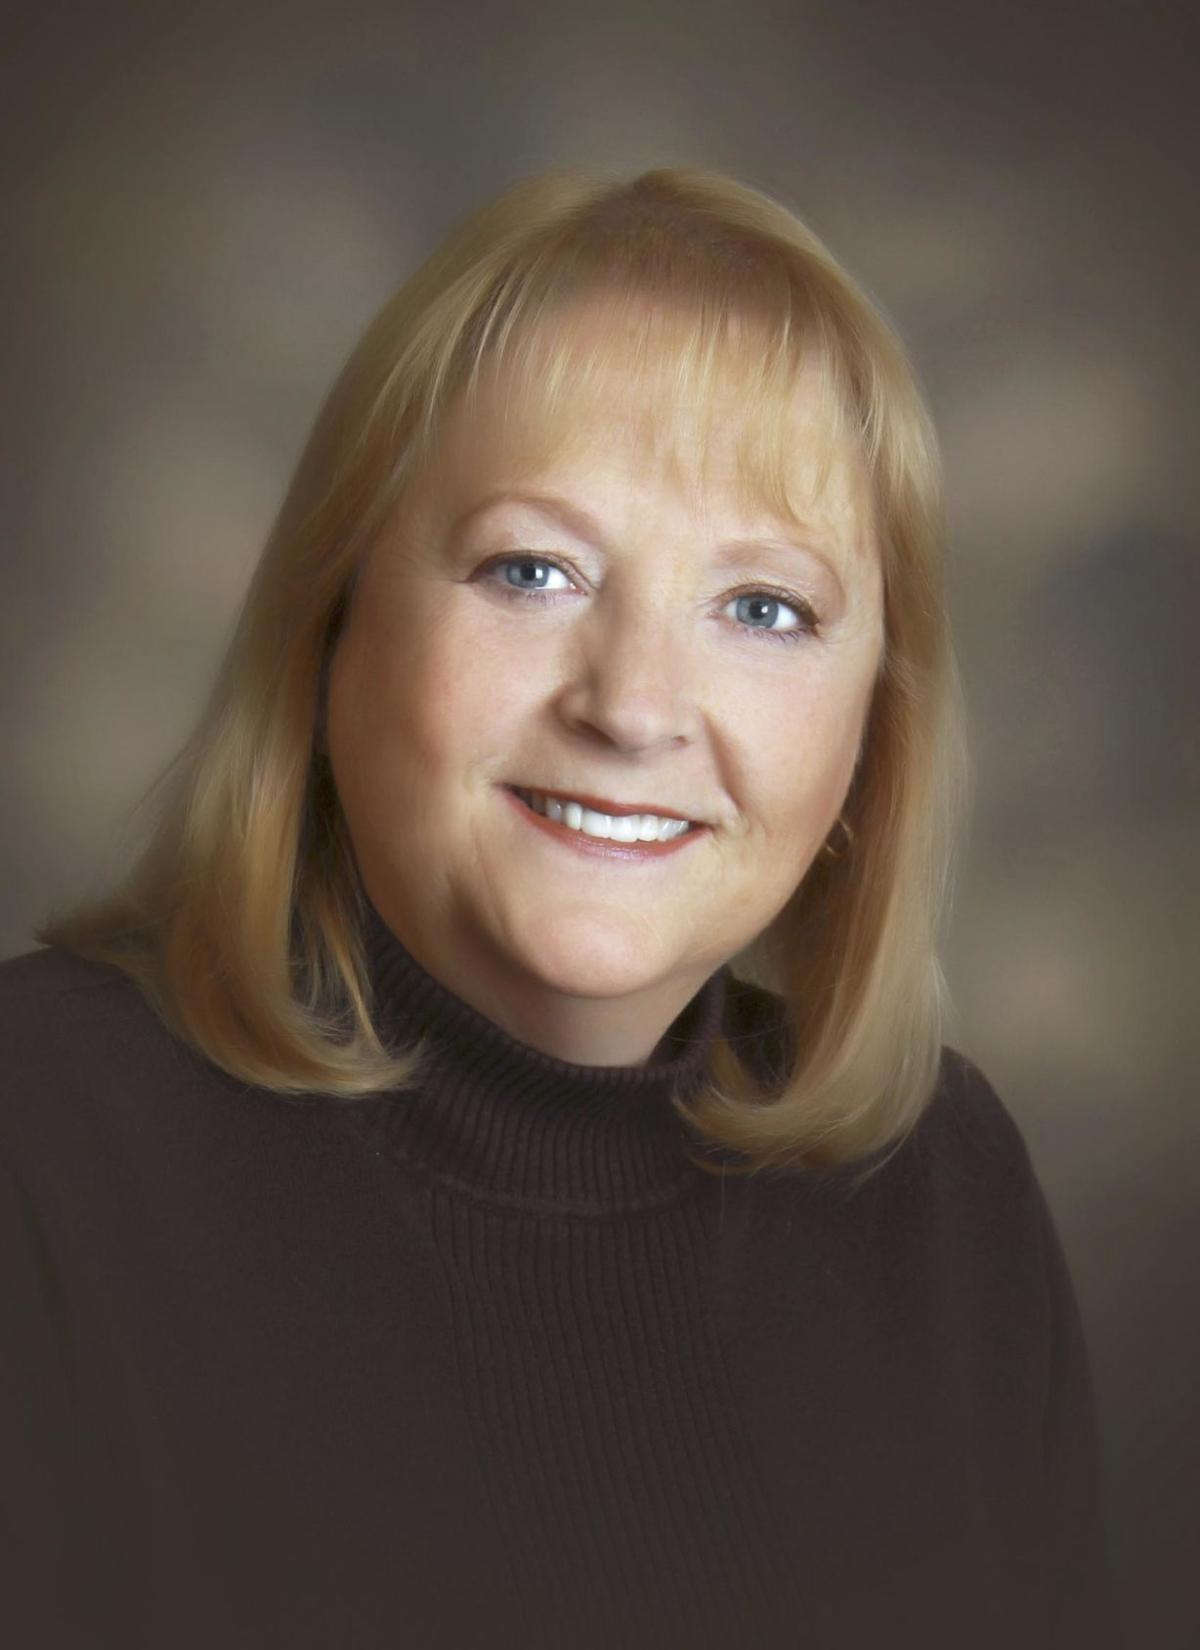 Local author to hold book signing Nov. 7